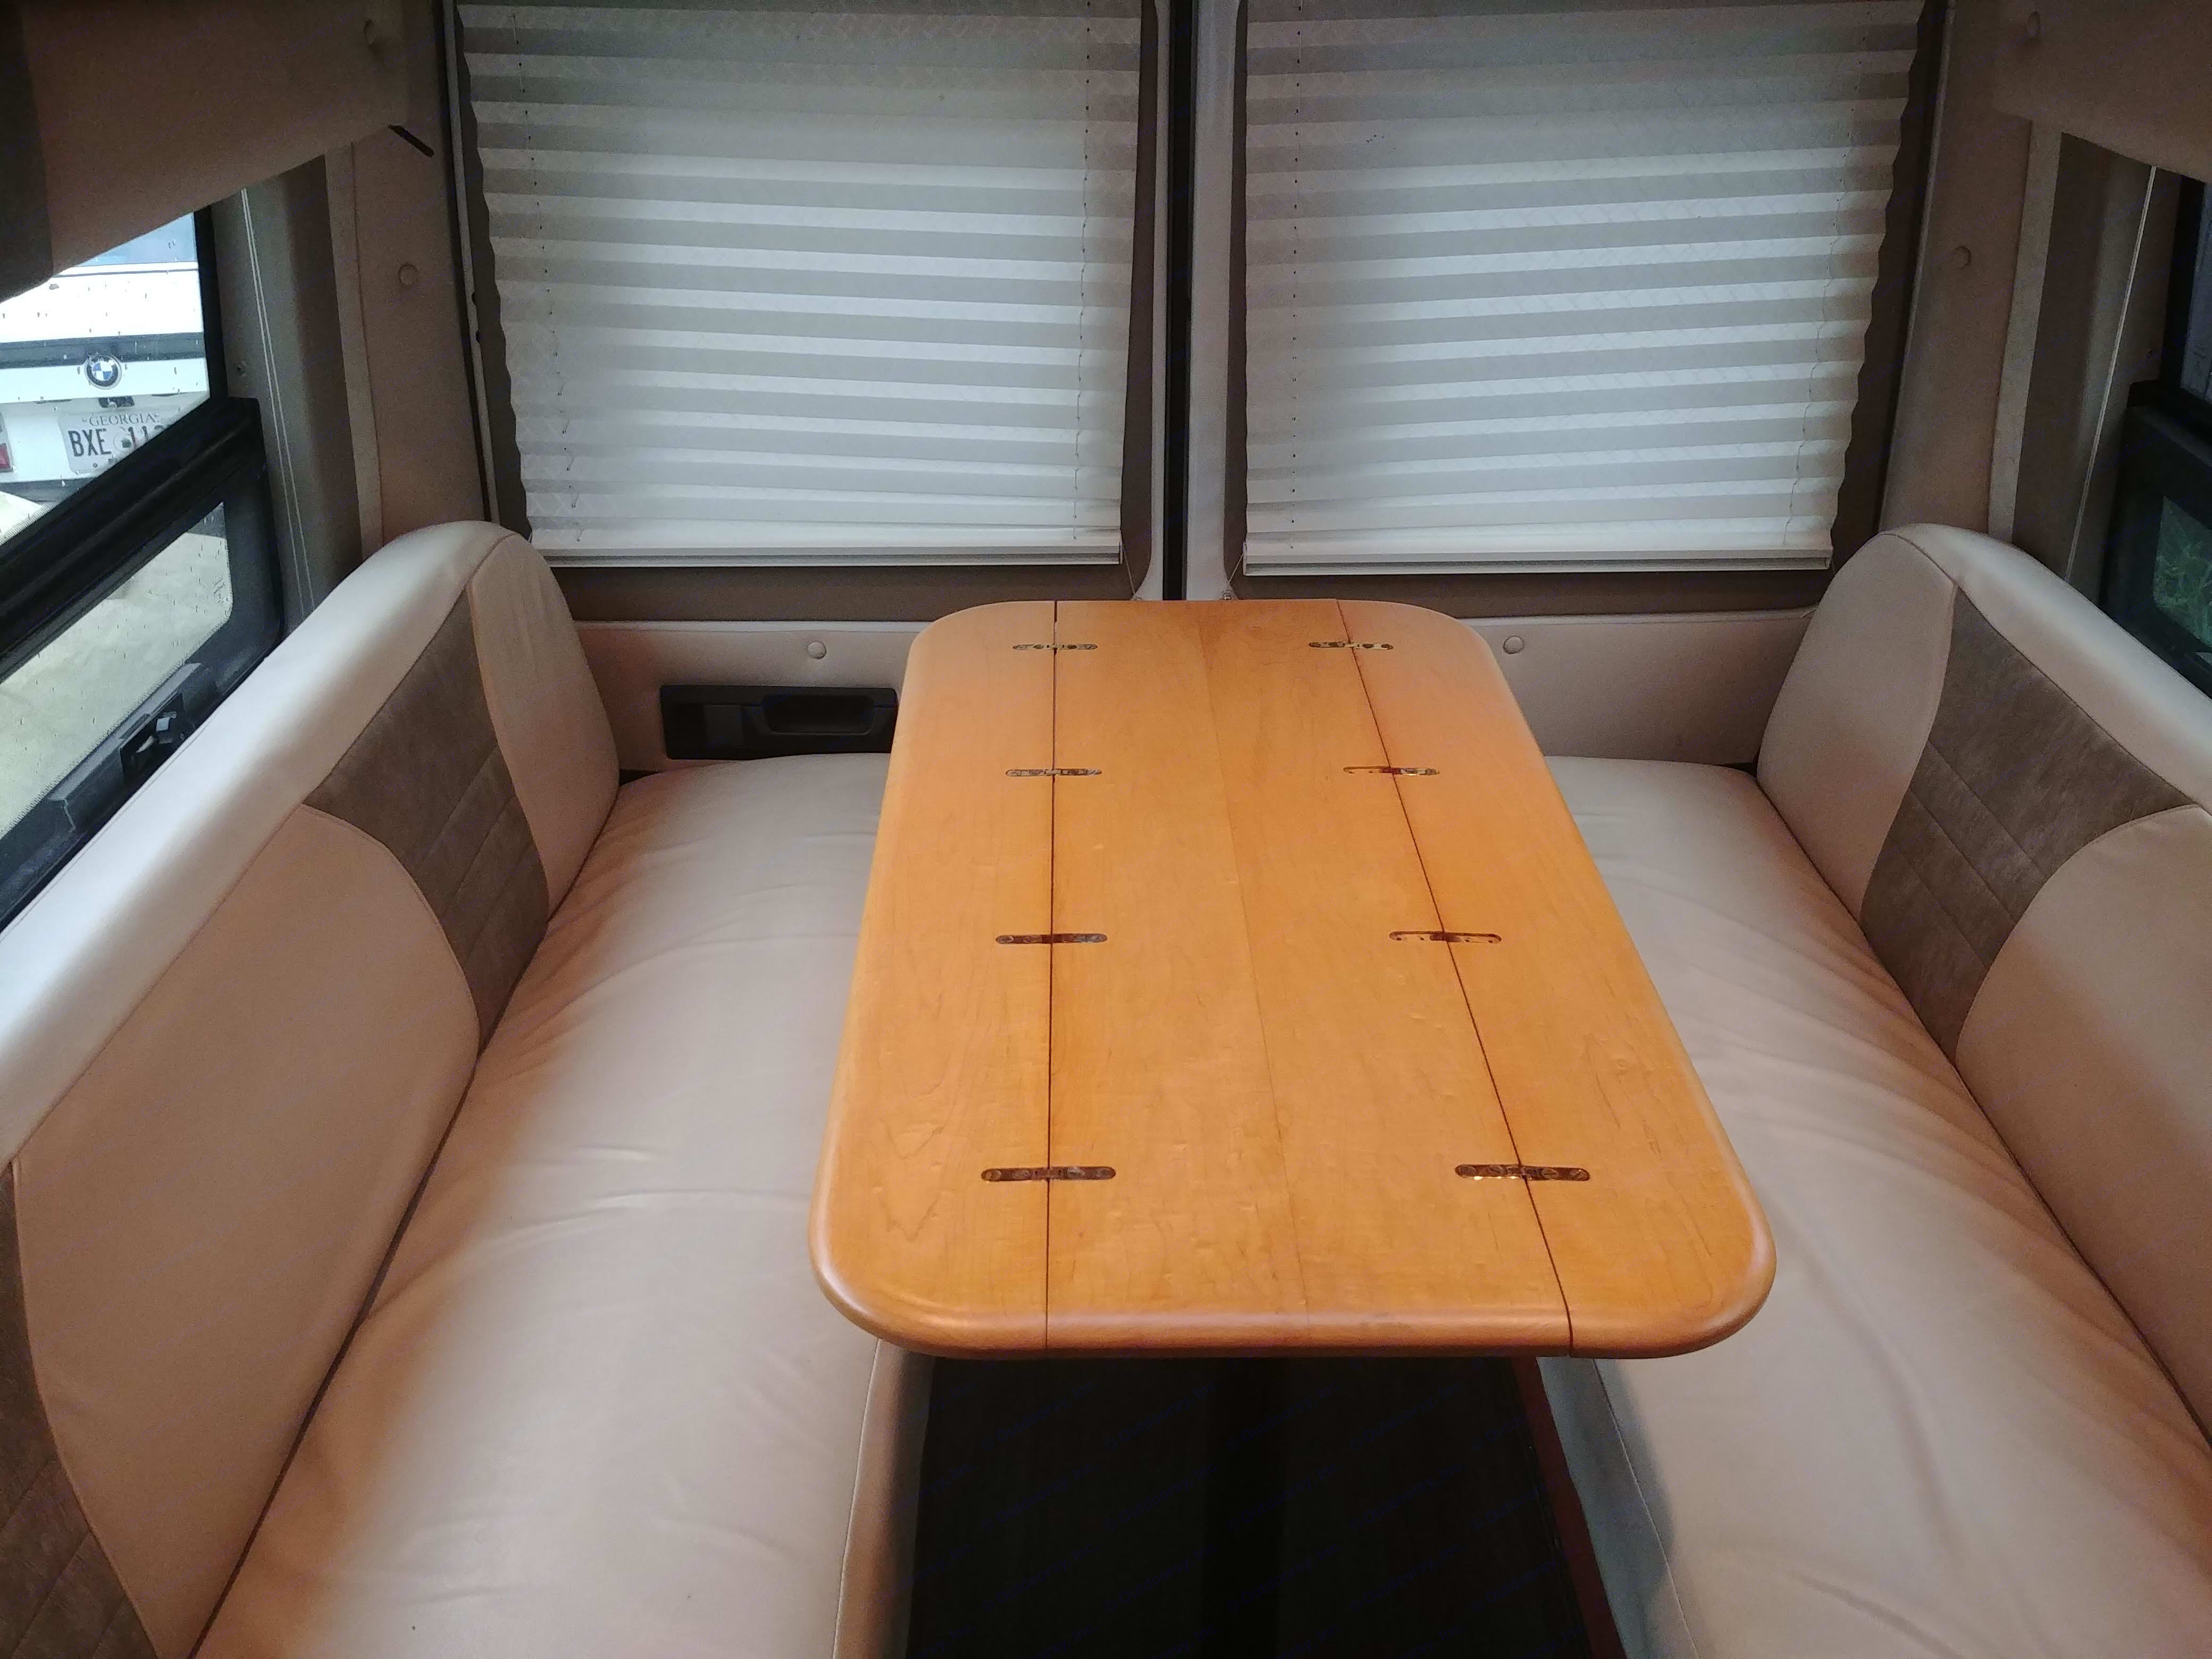 Gulf Stream Vista Cruiser 2005